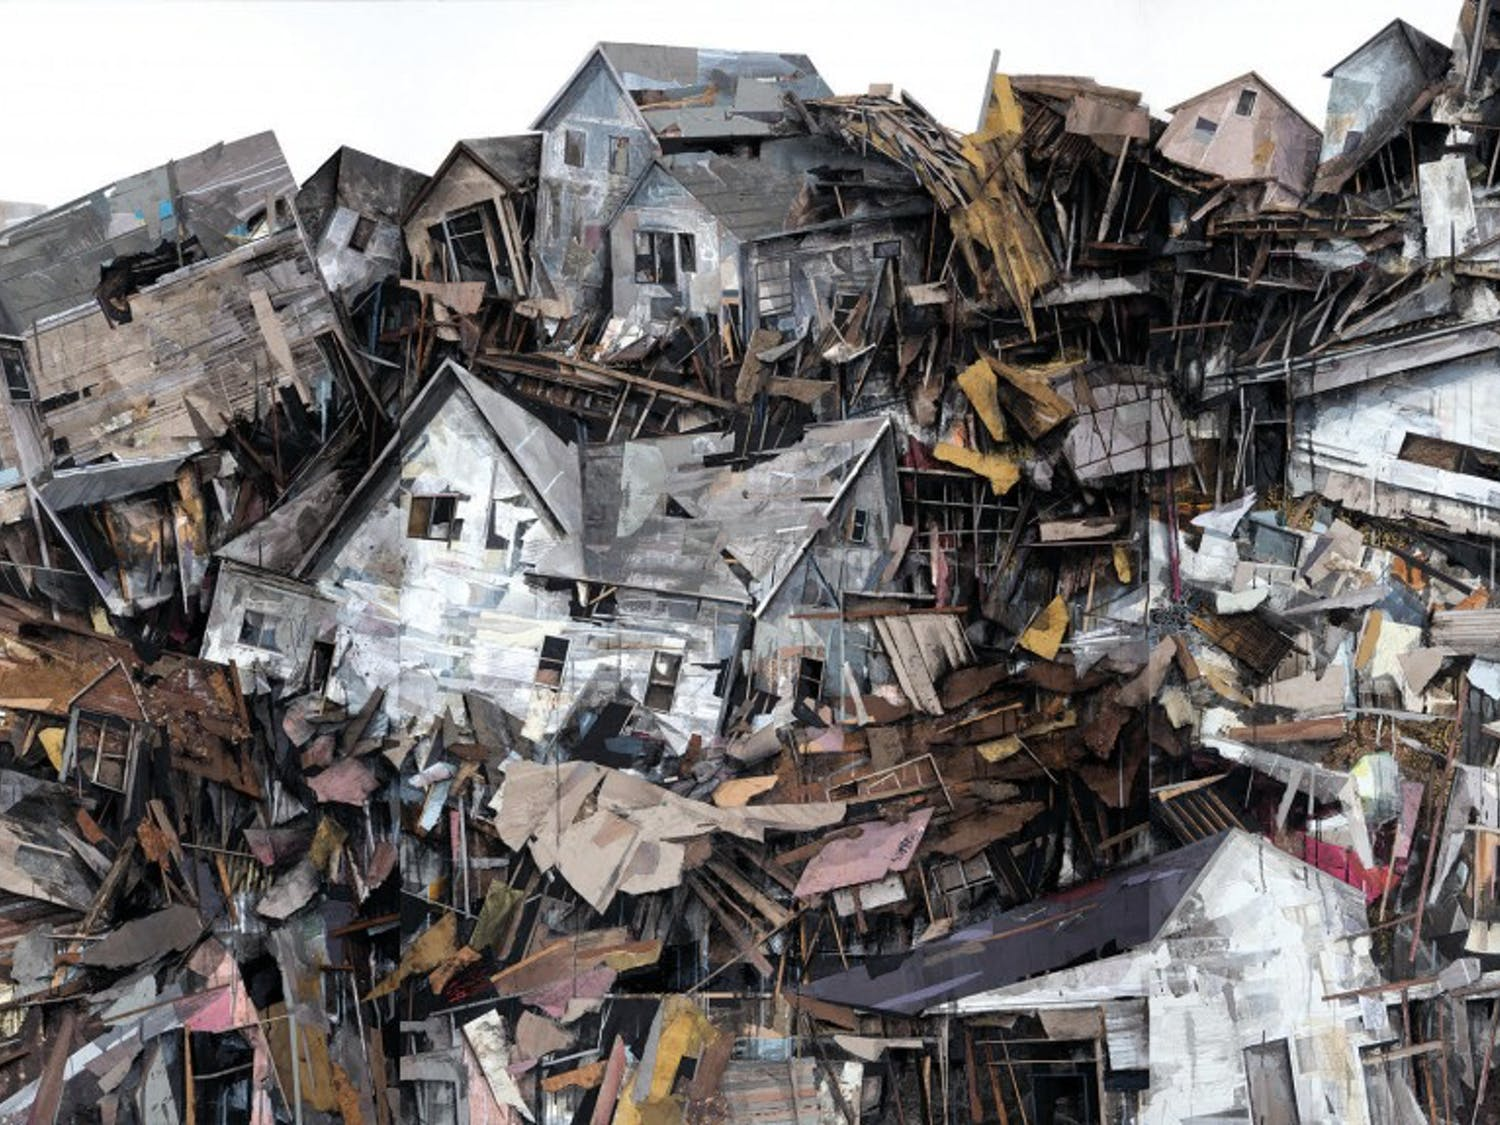 All the pieces in the exhibit aremade out of materials like housing insulation, pieces of wood and metal and represent the struggles of housing insecurity.